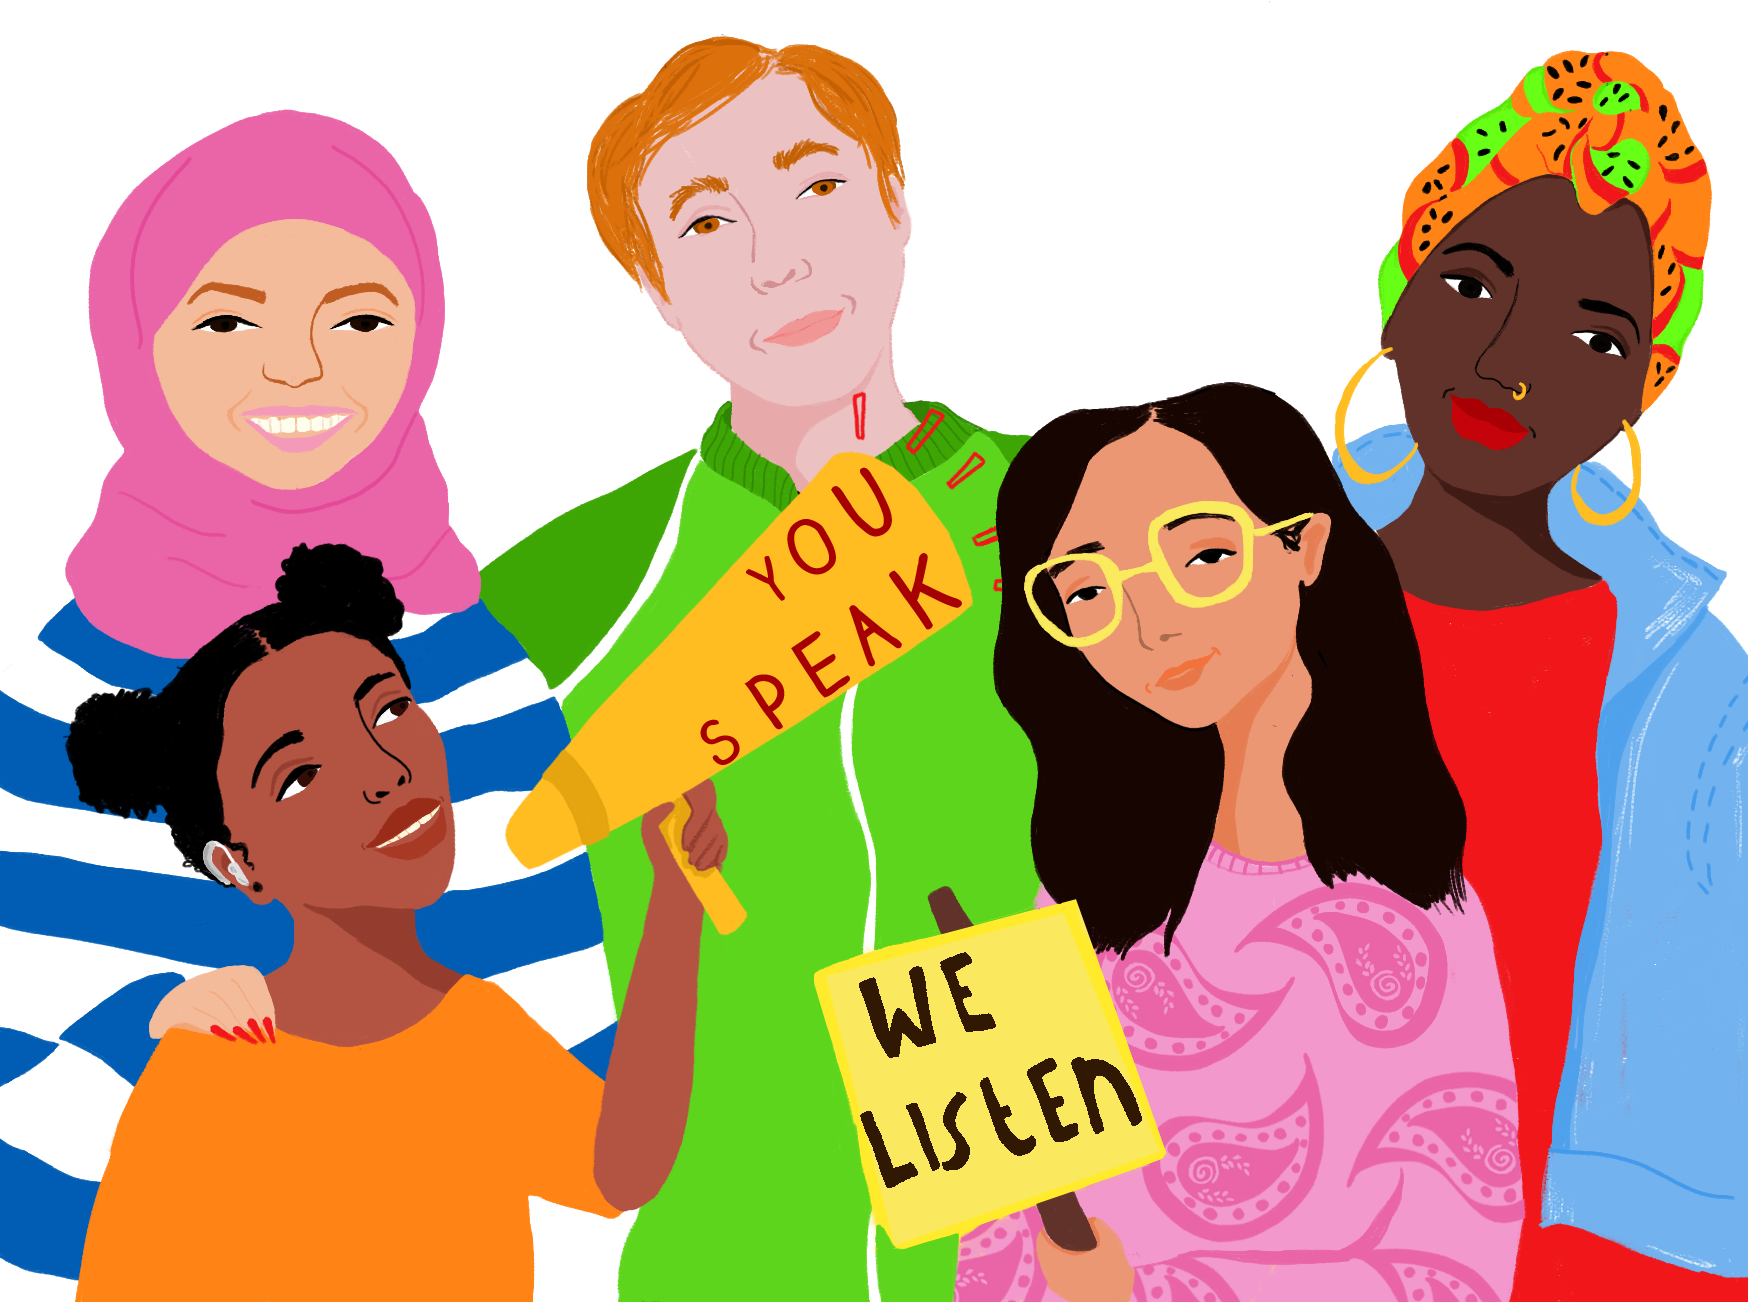 a colourful drawing of a diverse group of young people with different ethnicities, gendered and abilities. They are holding a megaphone which says 'you speak' and a banner which says 'we listen'